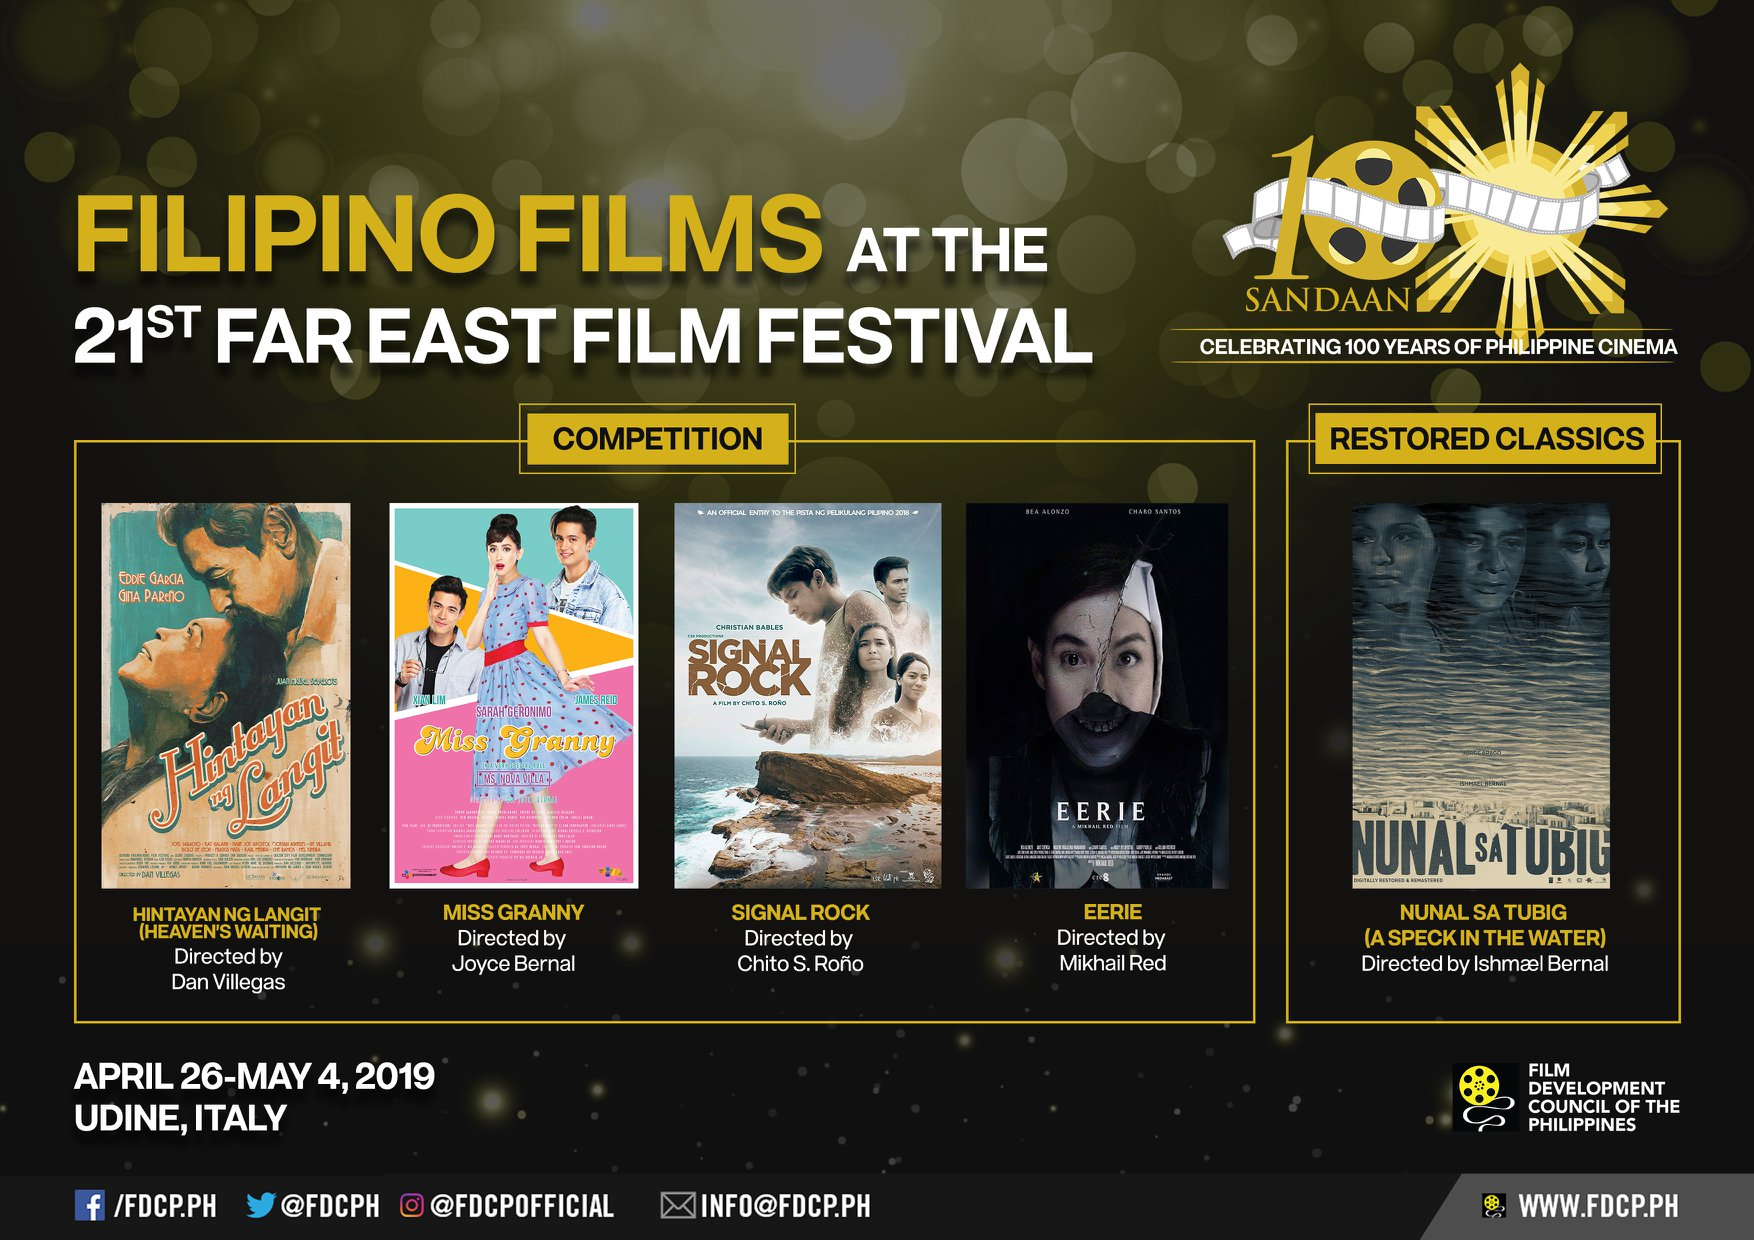 Philippine films go at the Far East Film Festival